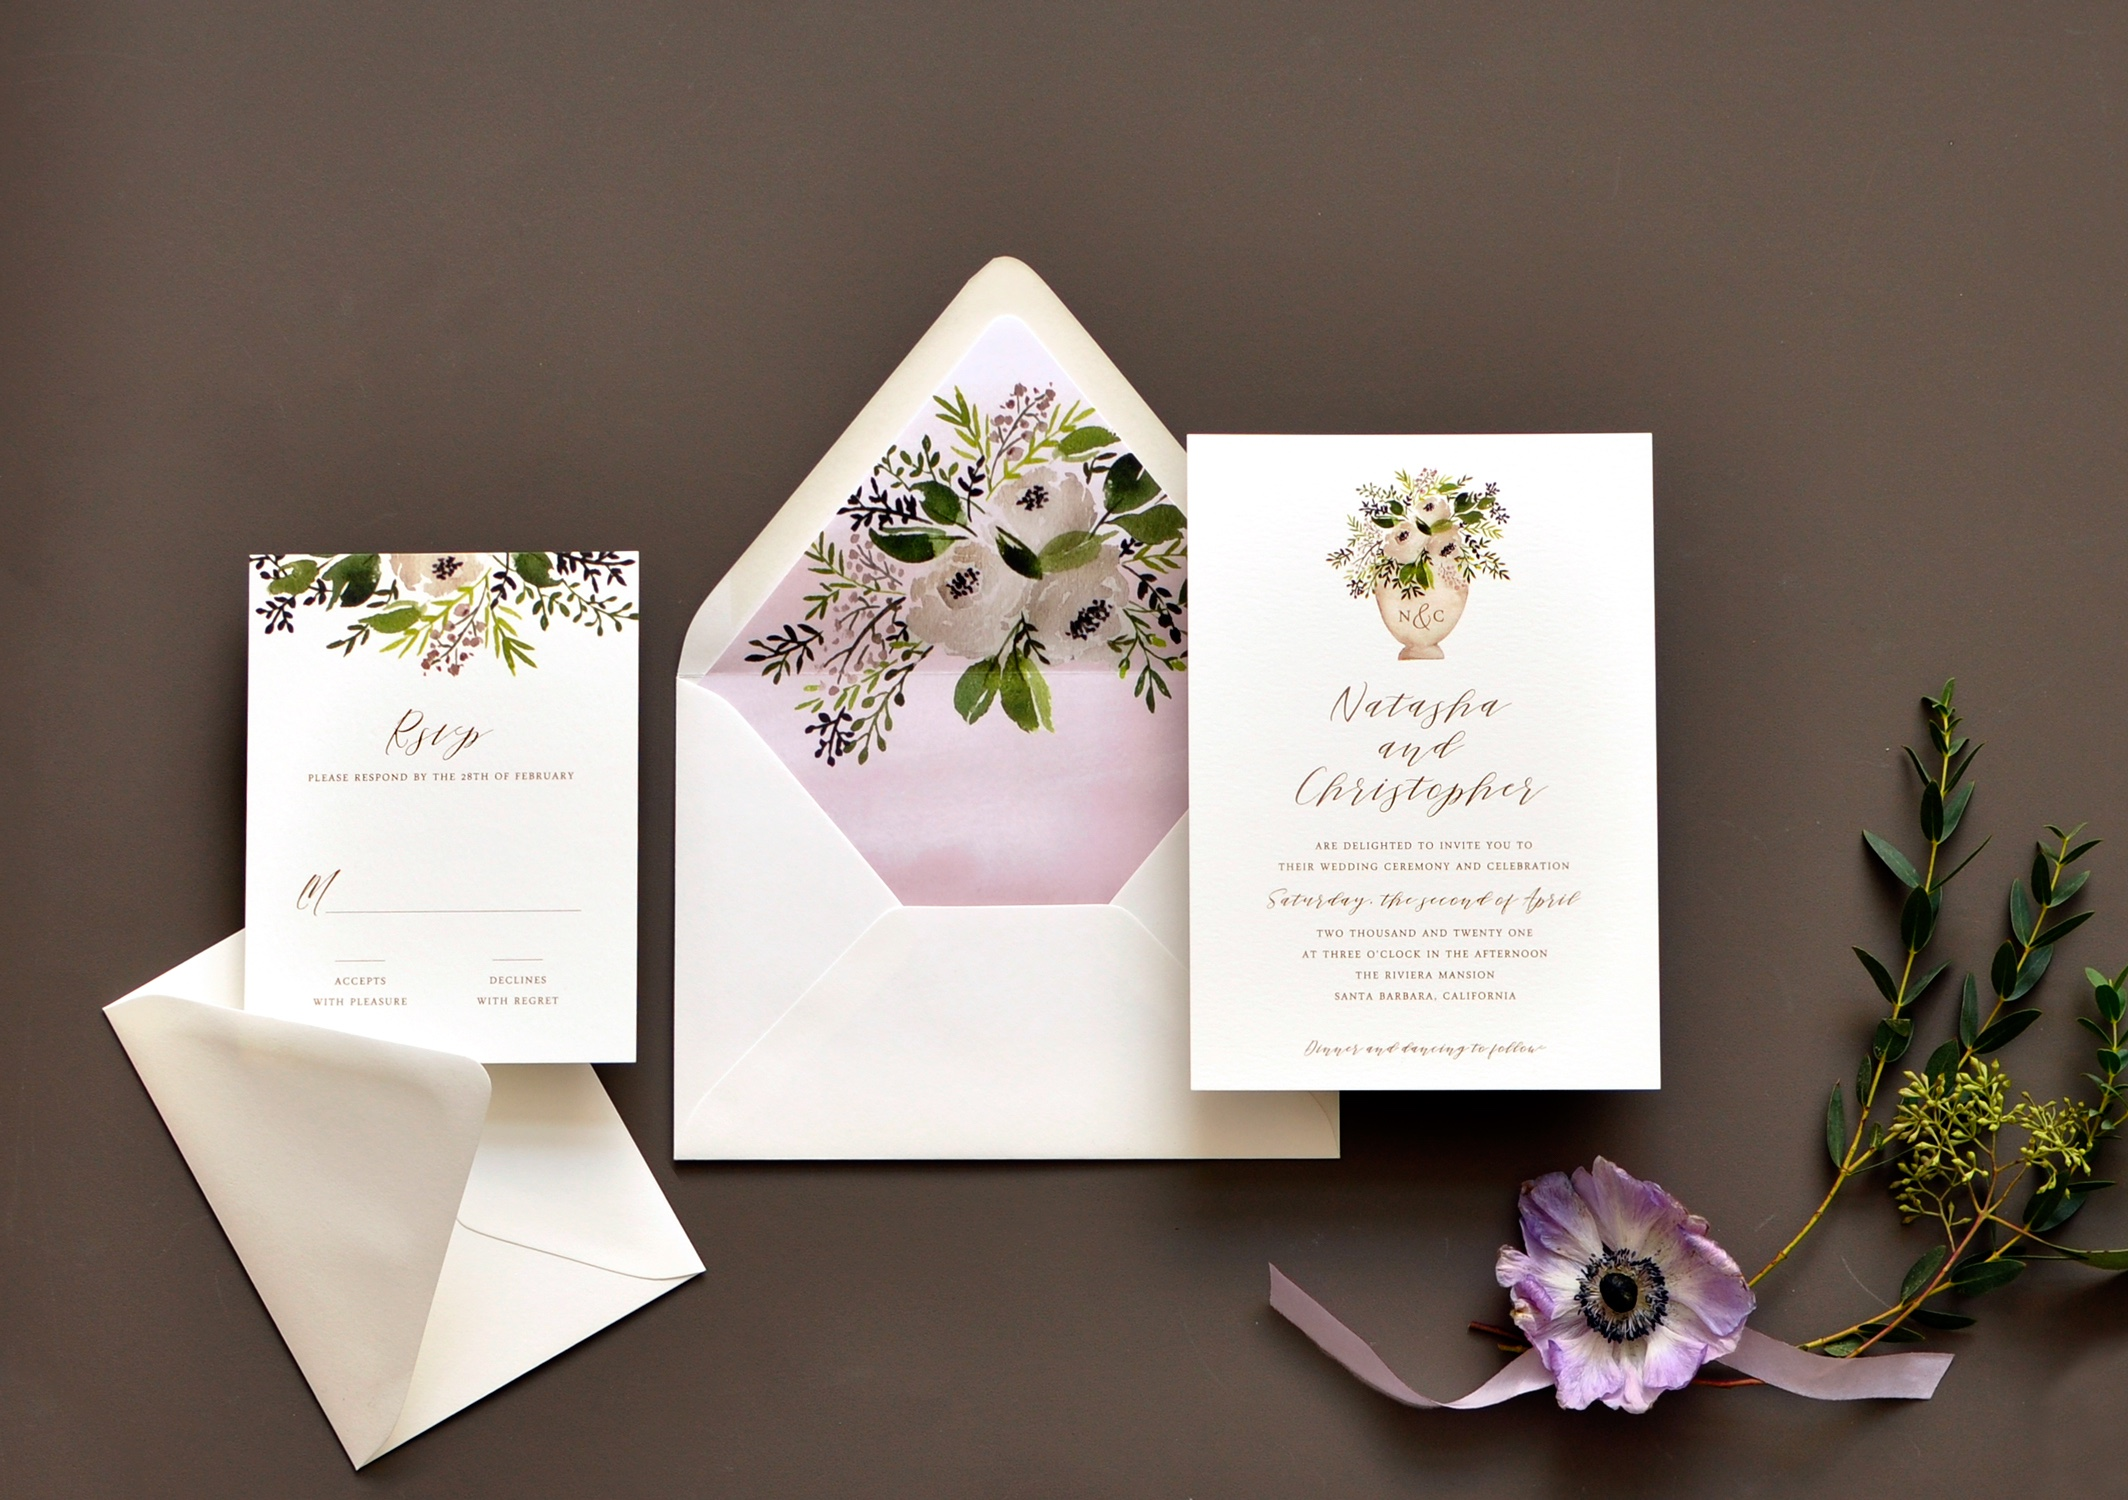 A planter of neutral flowers and pretty greenery graces the top of this contemporary calligraphy invitation perfect for a garden wedding.